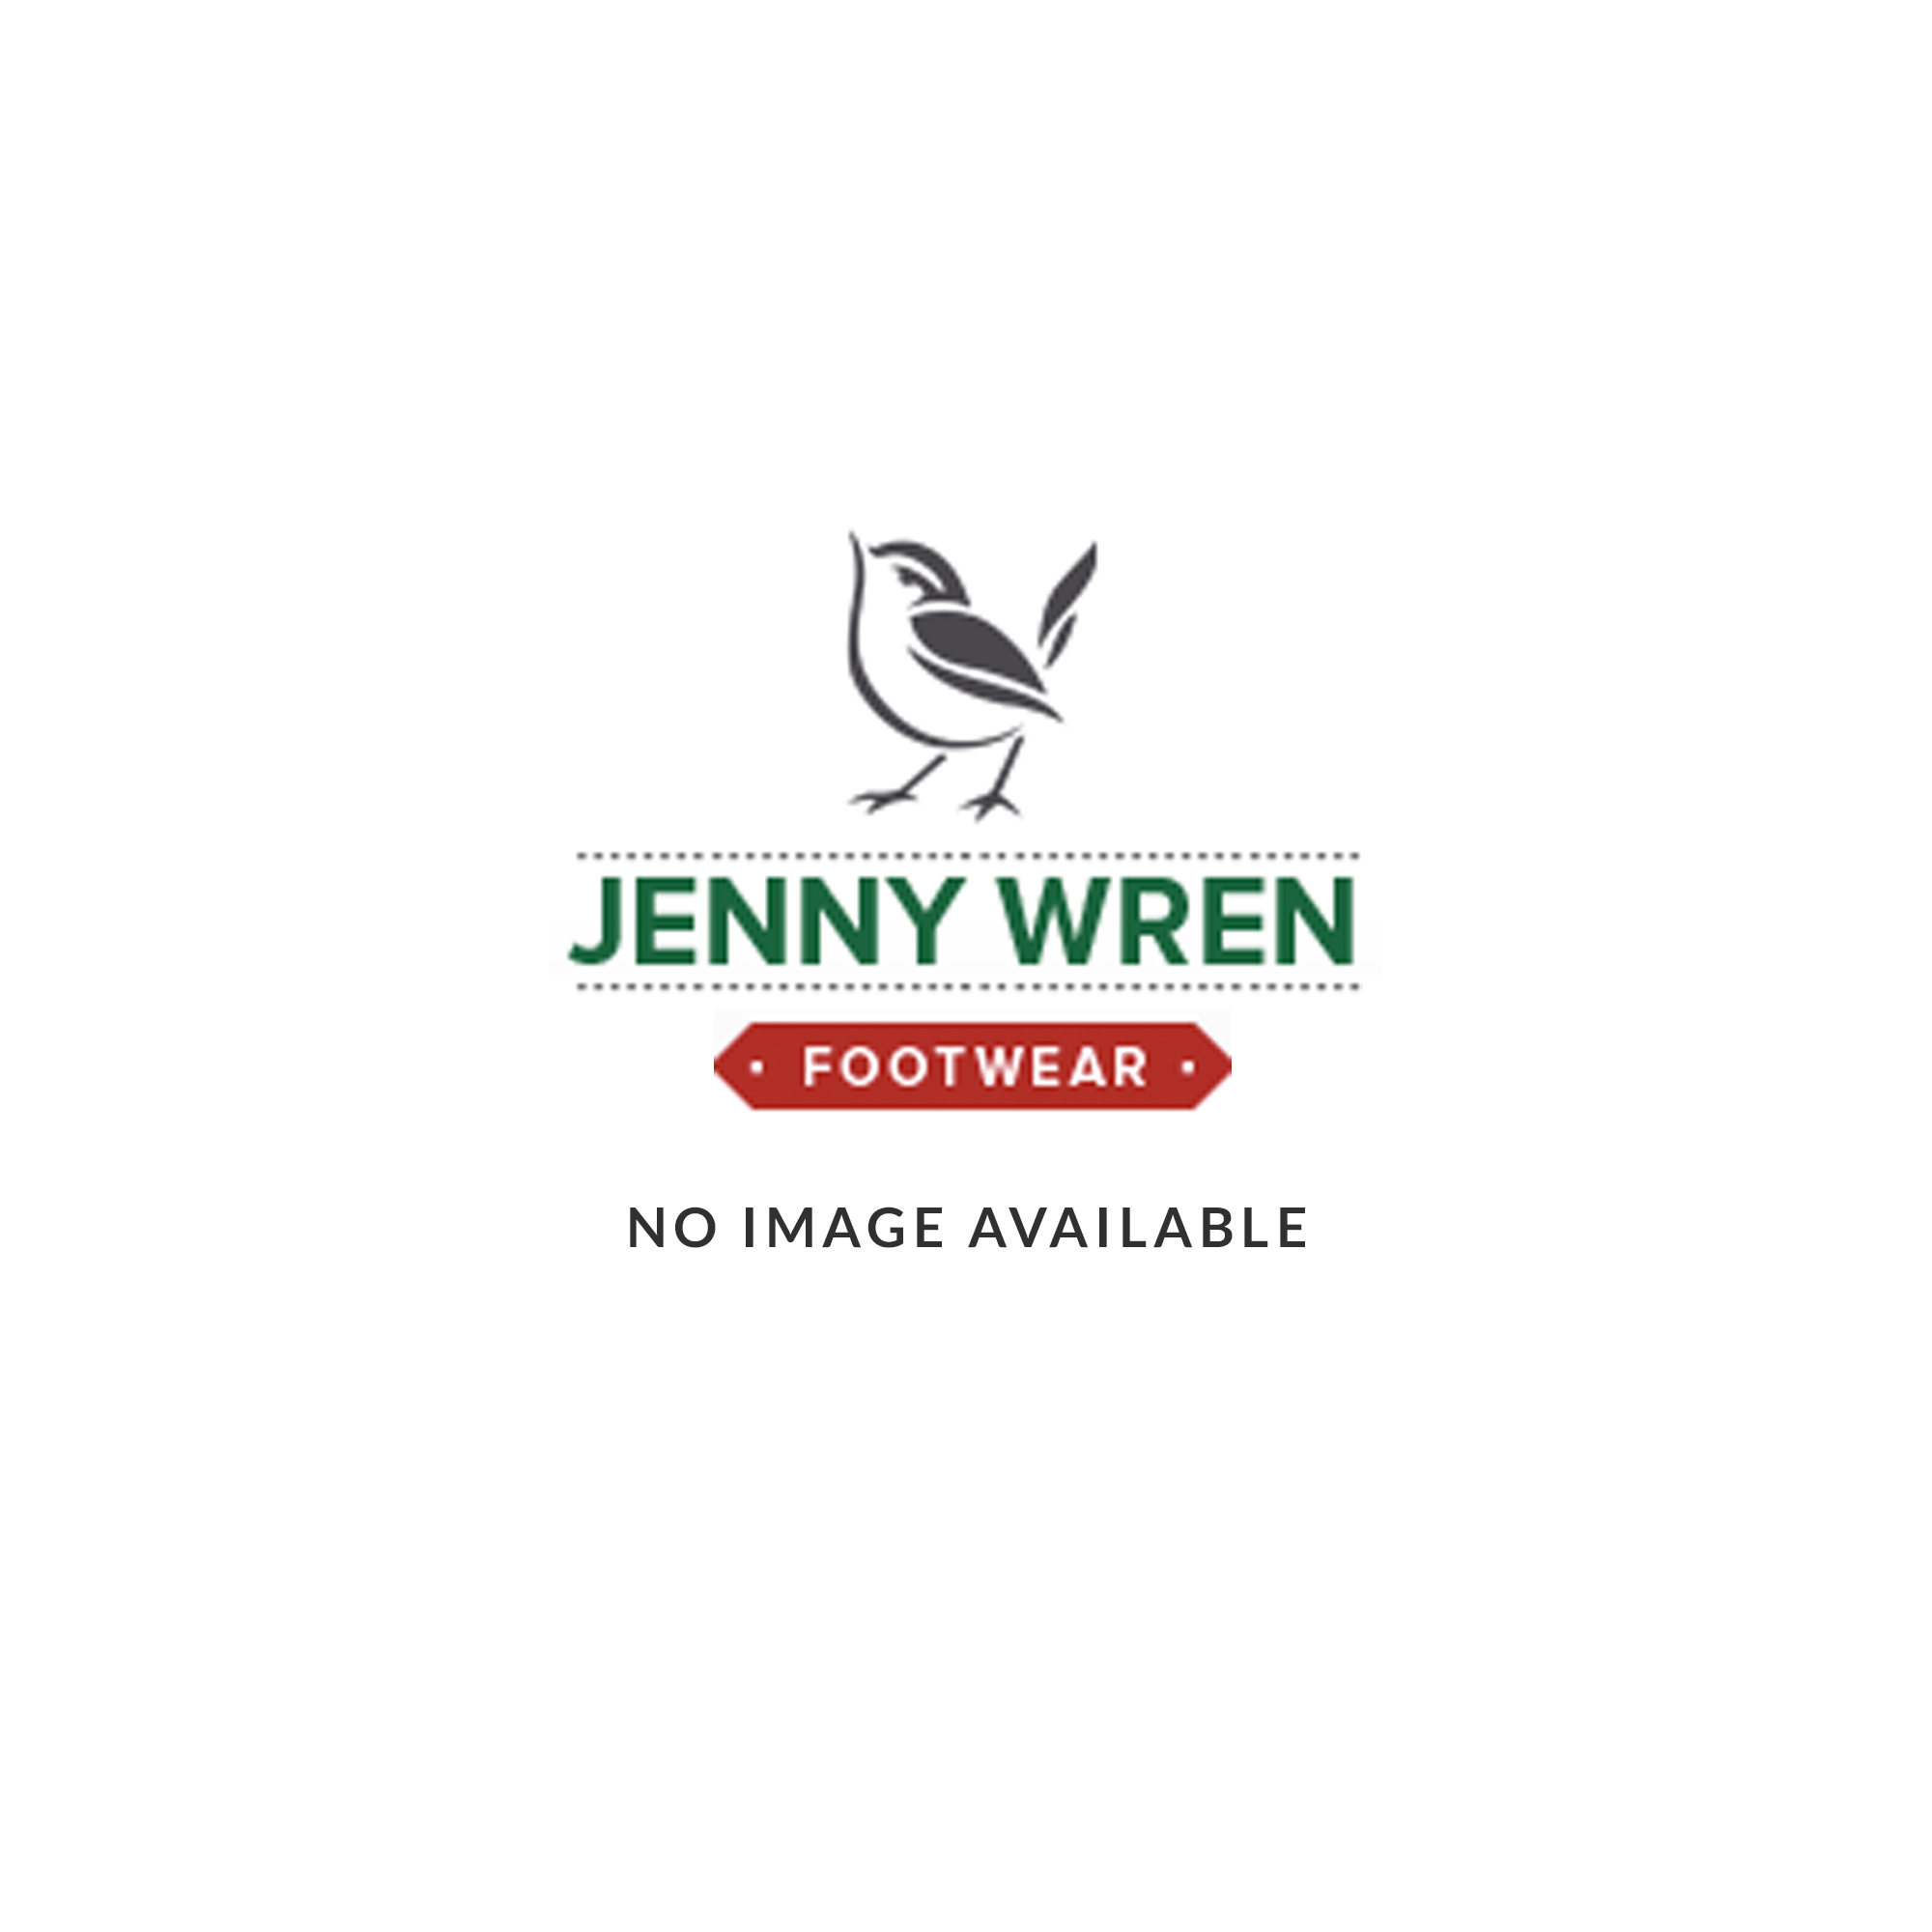 Tropez Slingback Buckle Toe Post Leather Flat Comfort Sandals